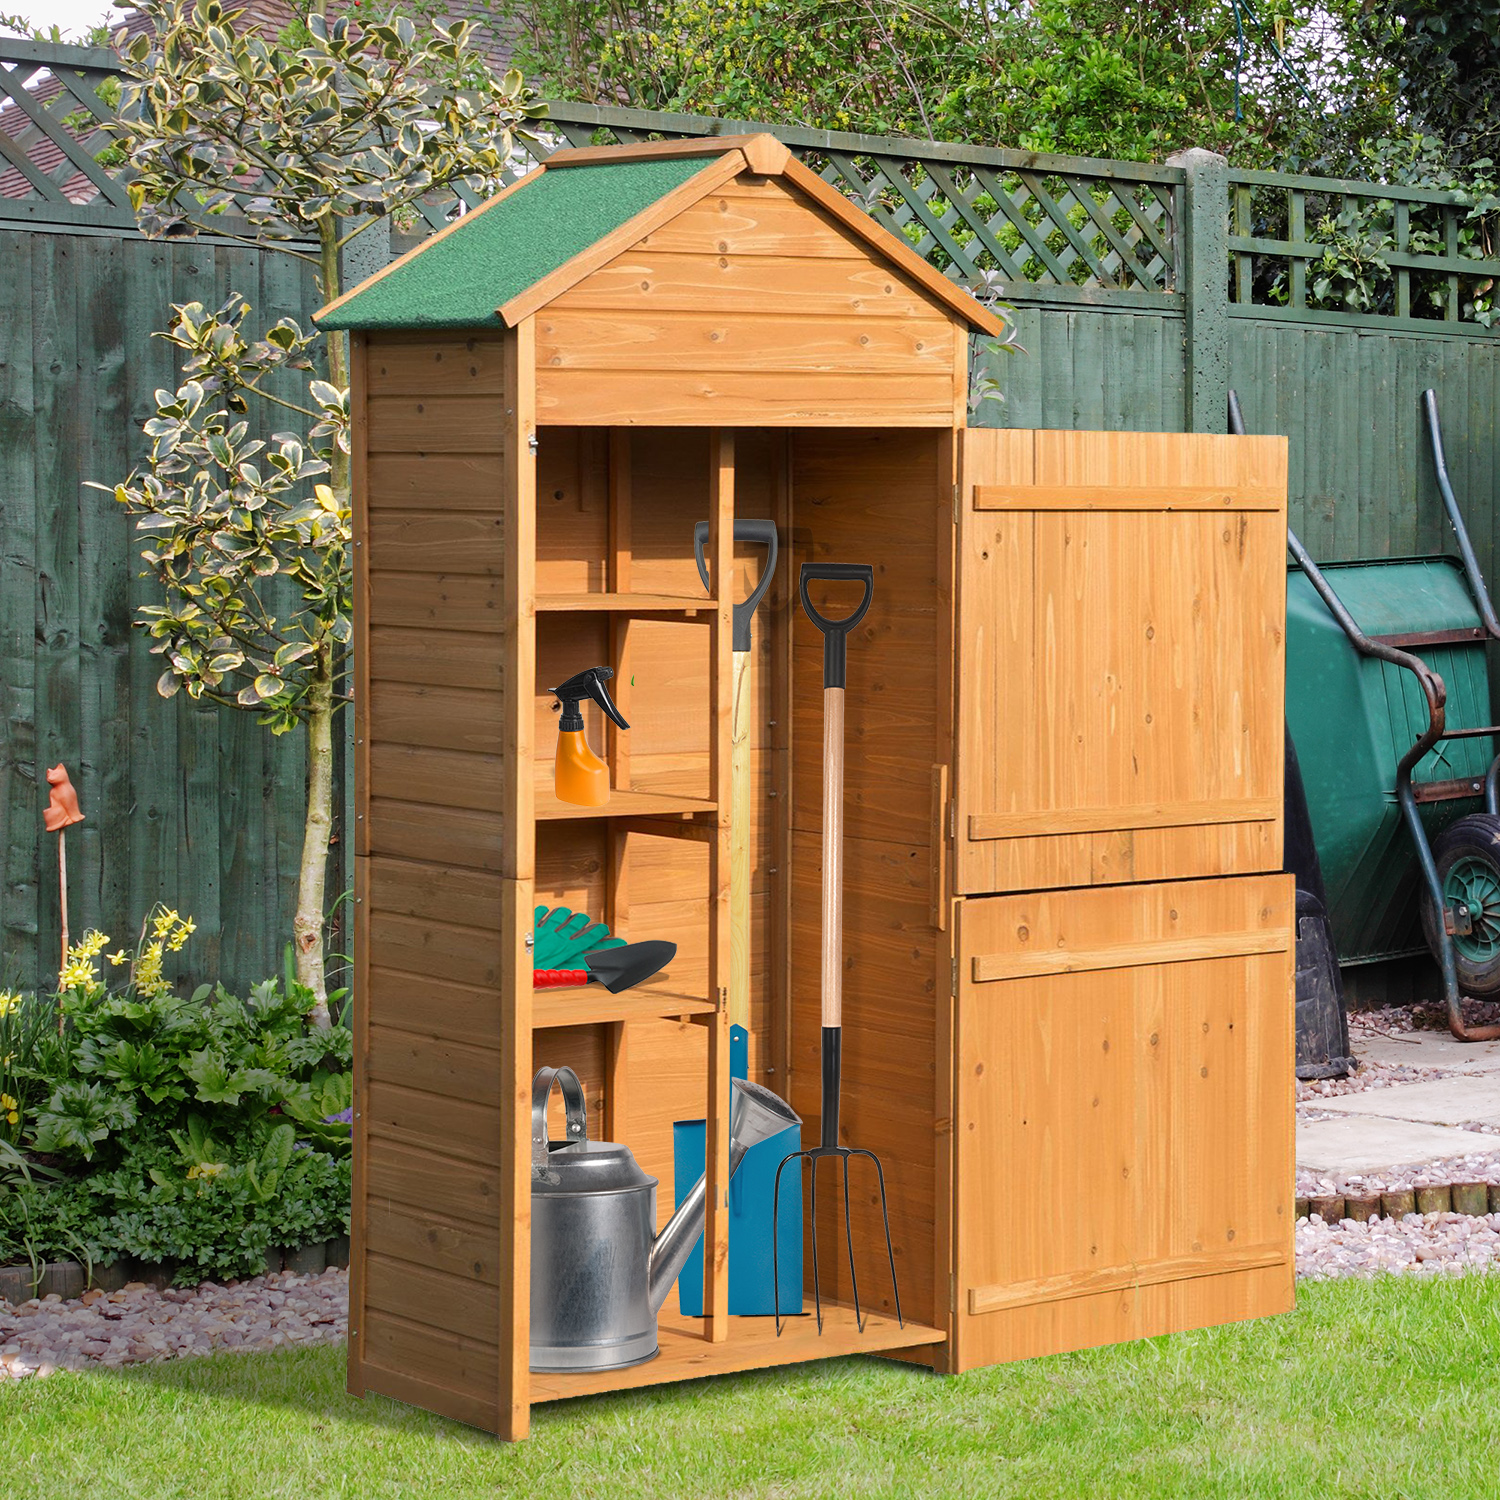 Details About Outsunny 90x50cm Wooden Garden Shed Outdoor Shelves Utility  Tool Storage Cabinet